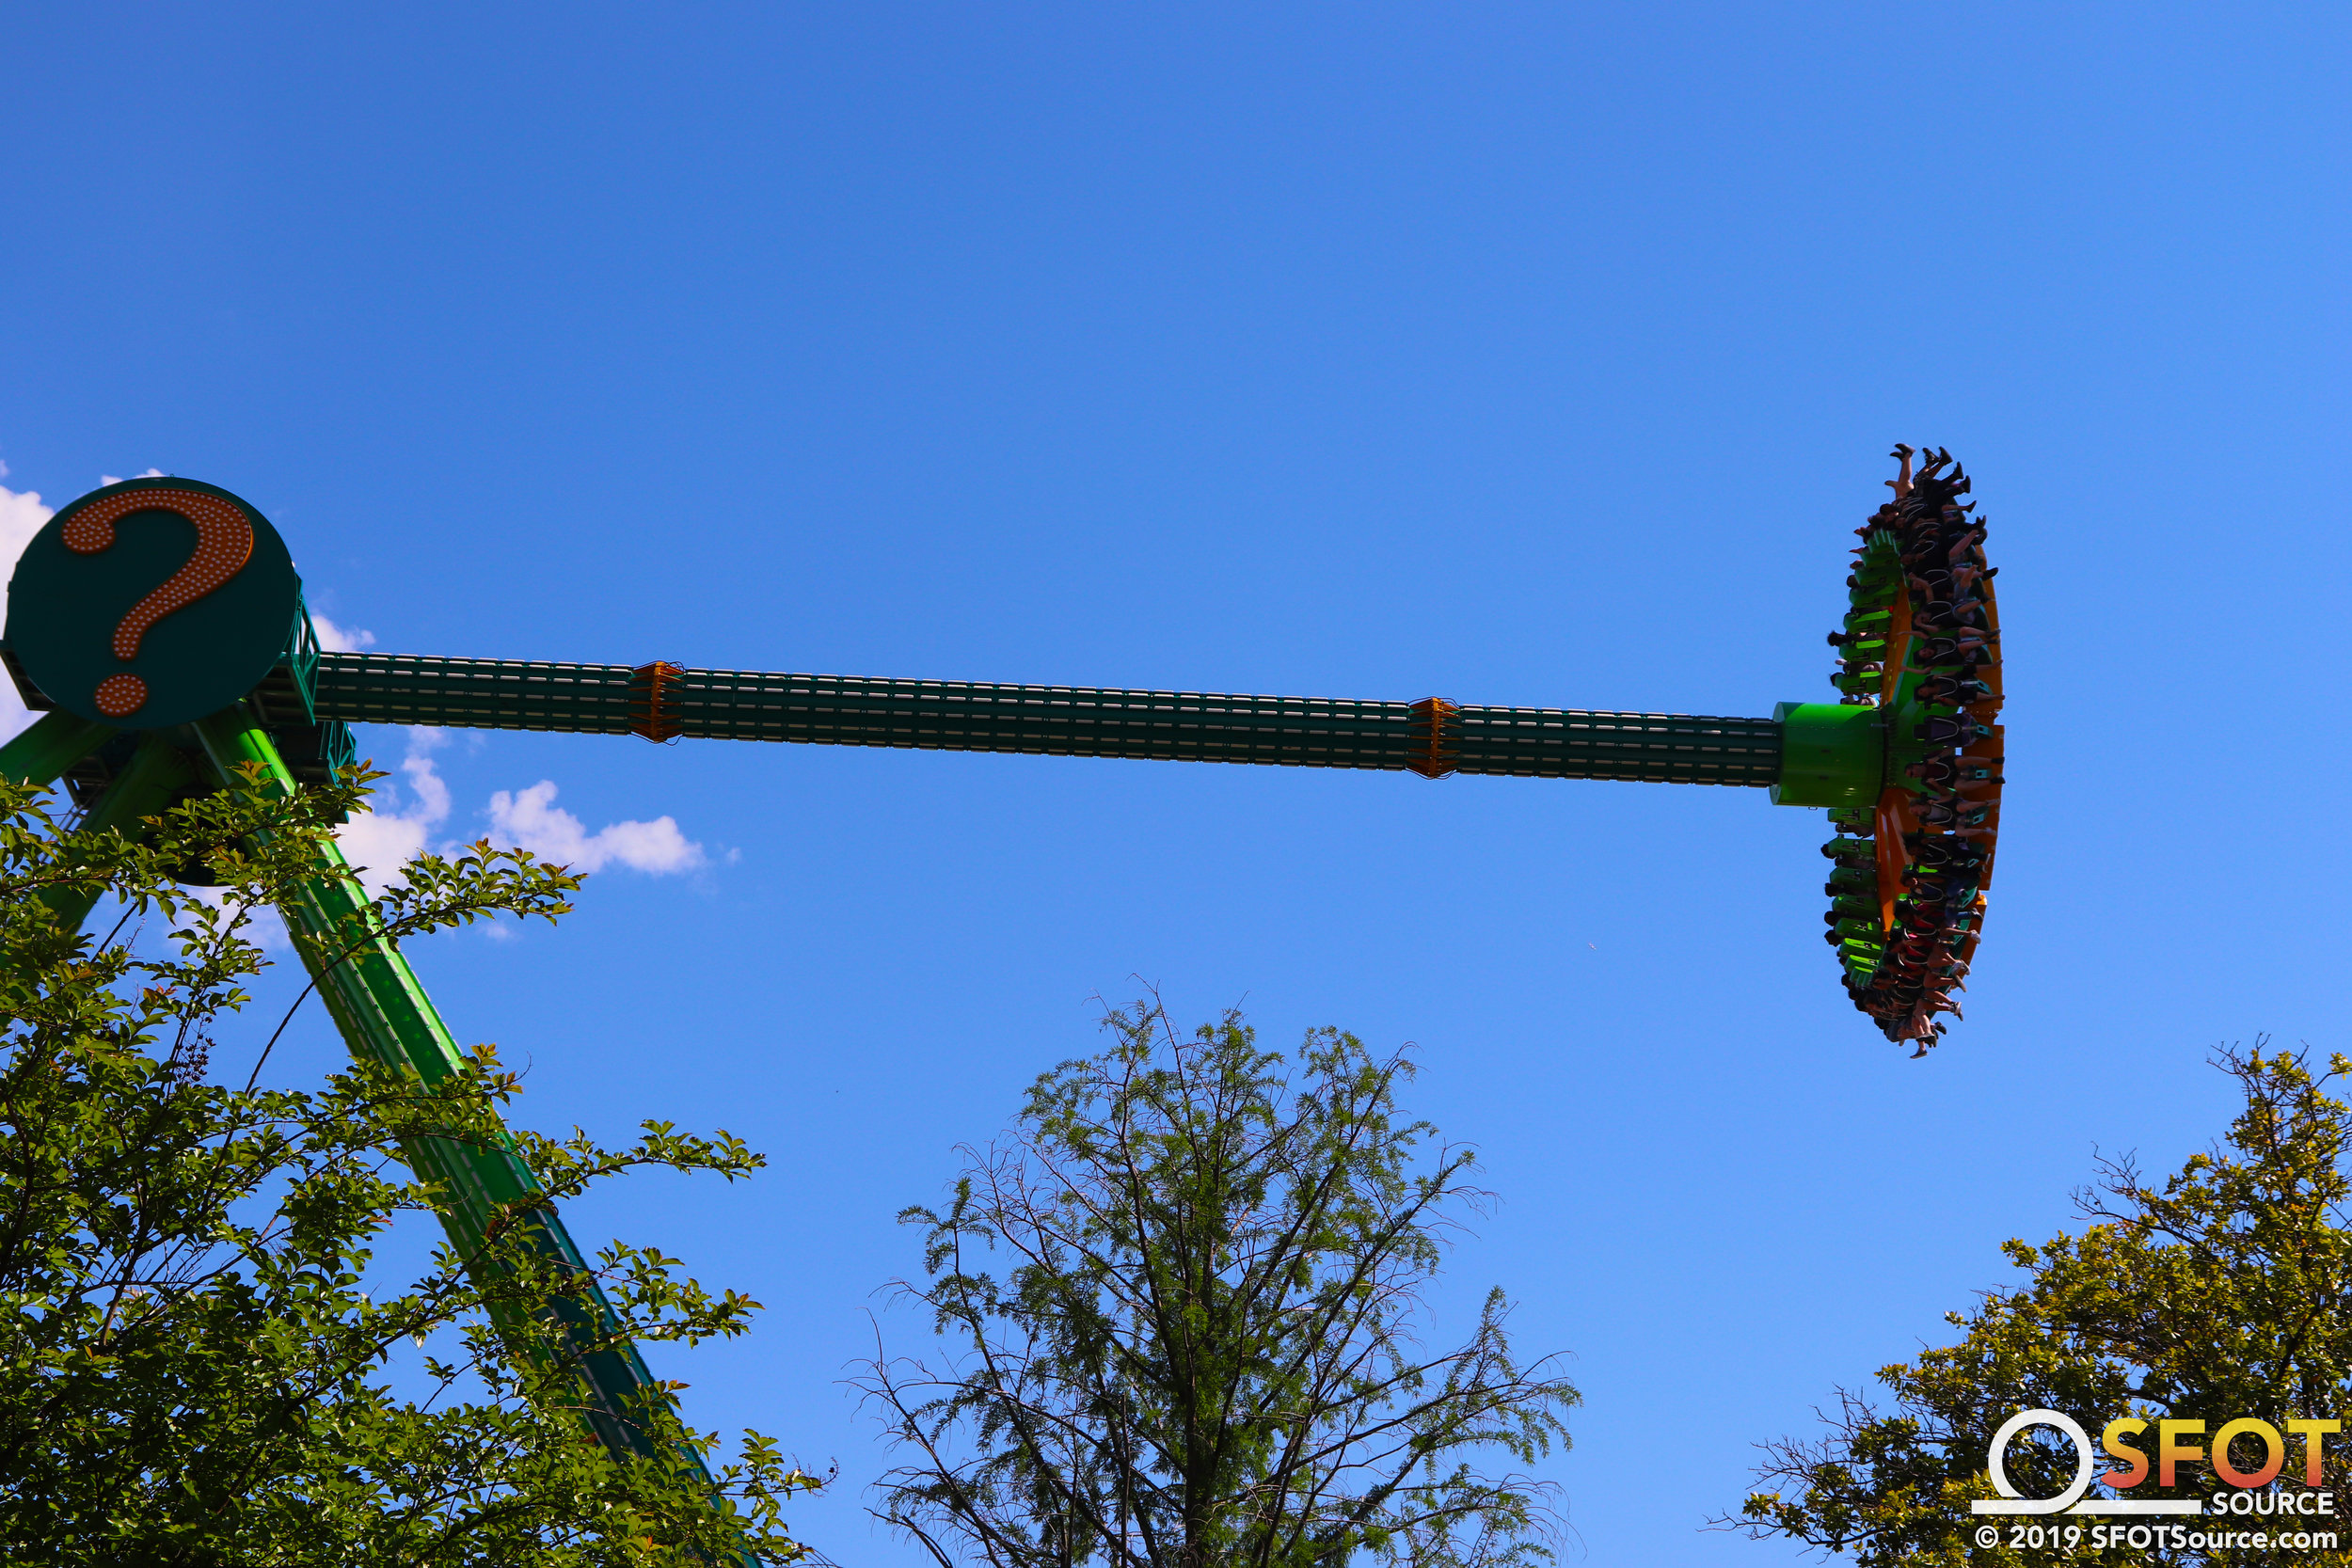 Riddler Revenge is one of the most intense flat rides found at the park.